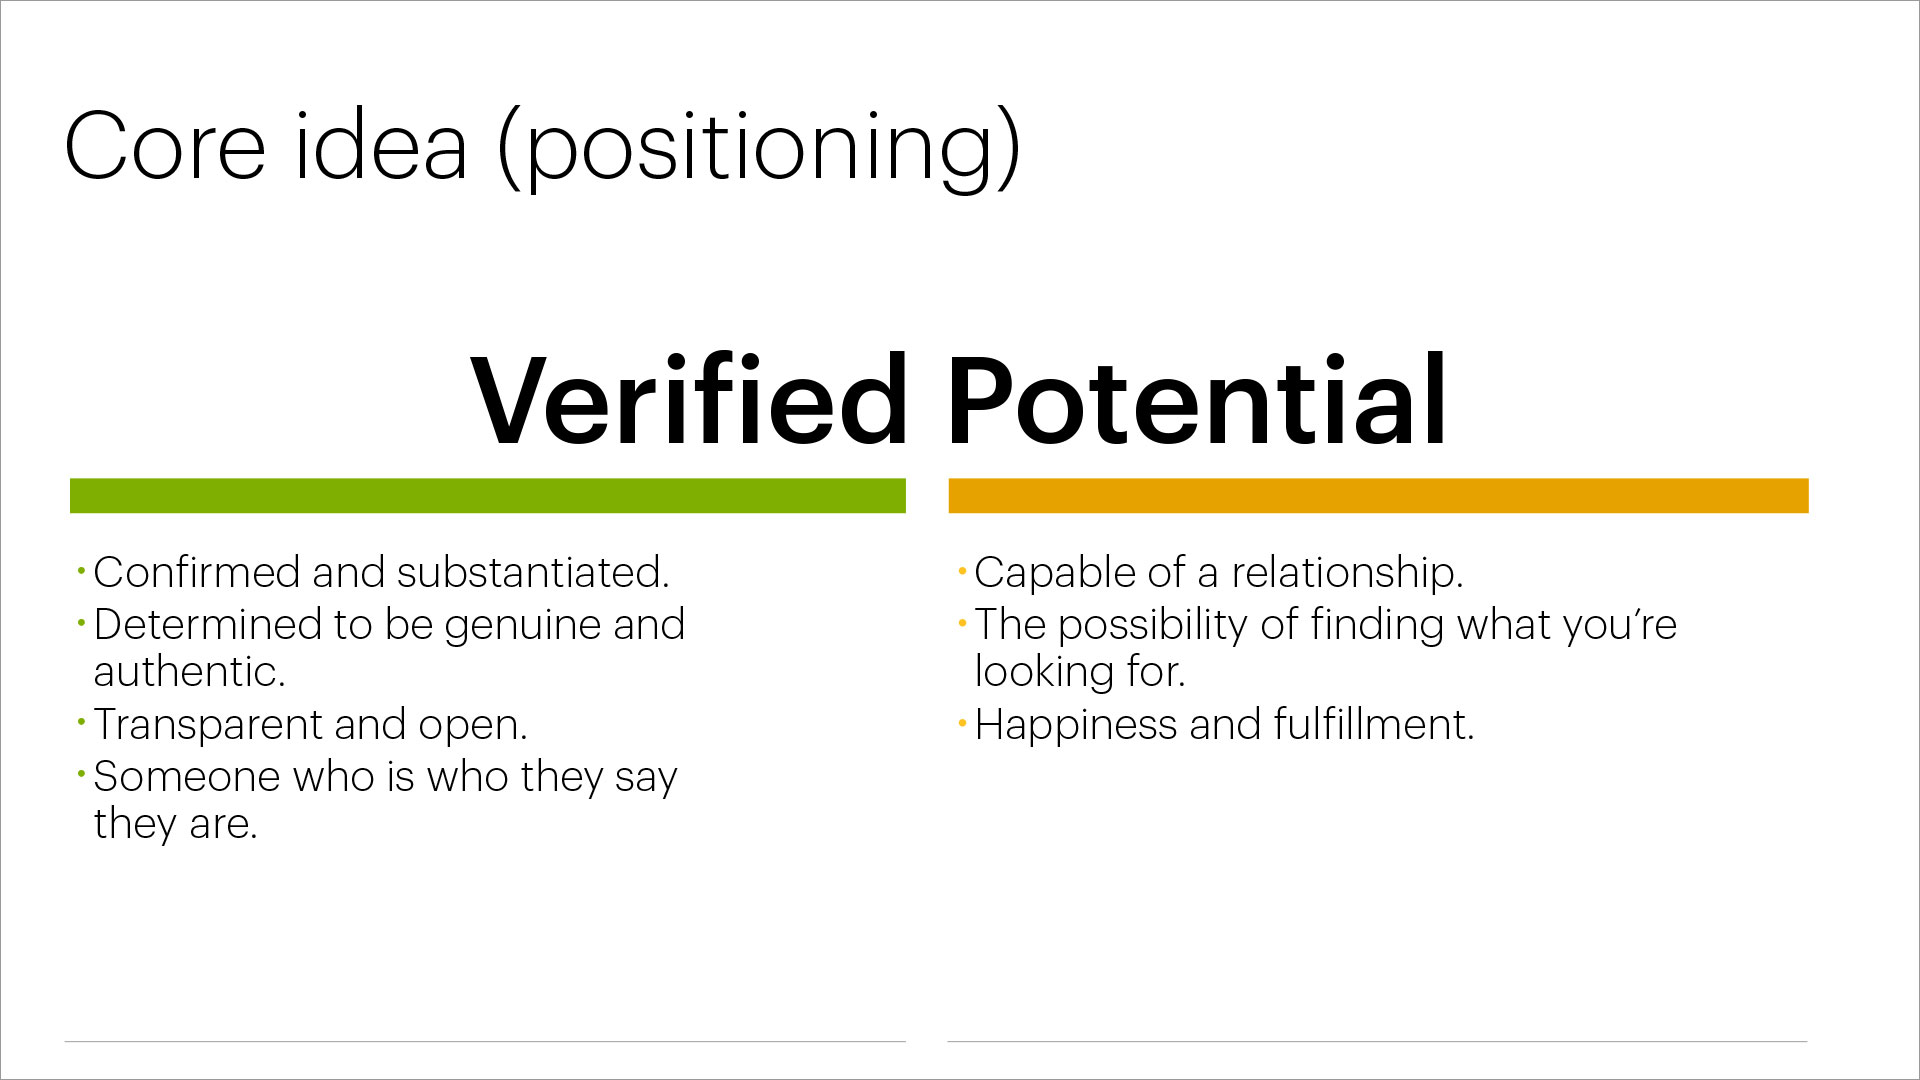 bTru positioning statement: Verified Potential. Detailed description of positioning statement.